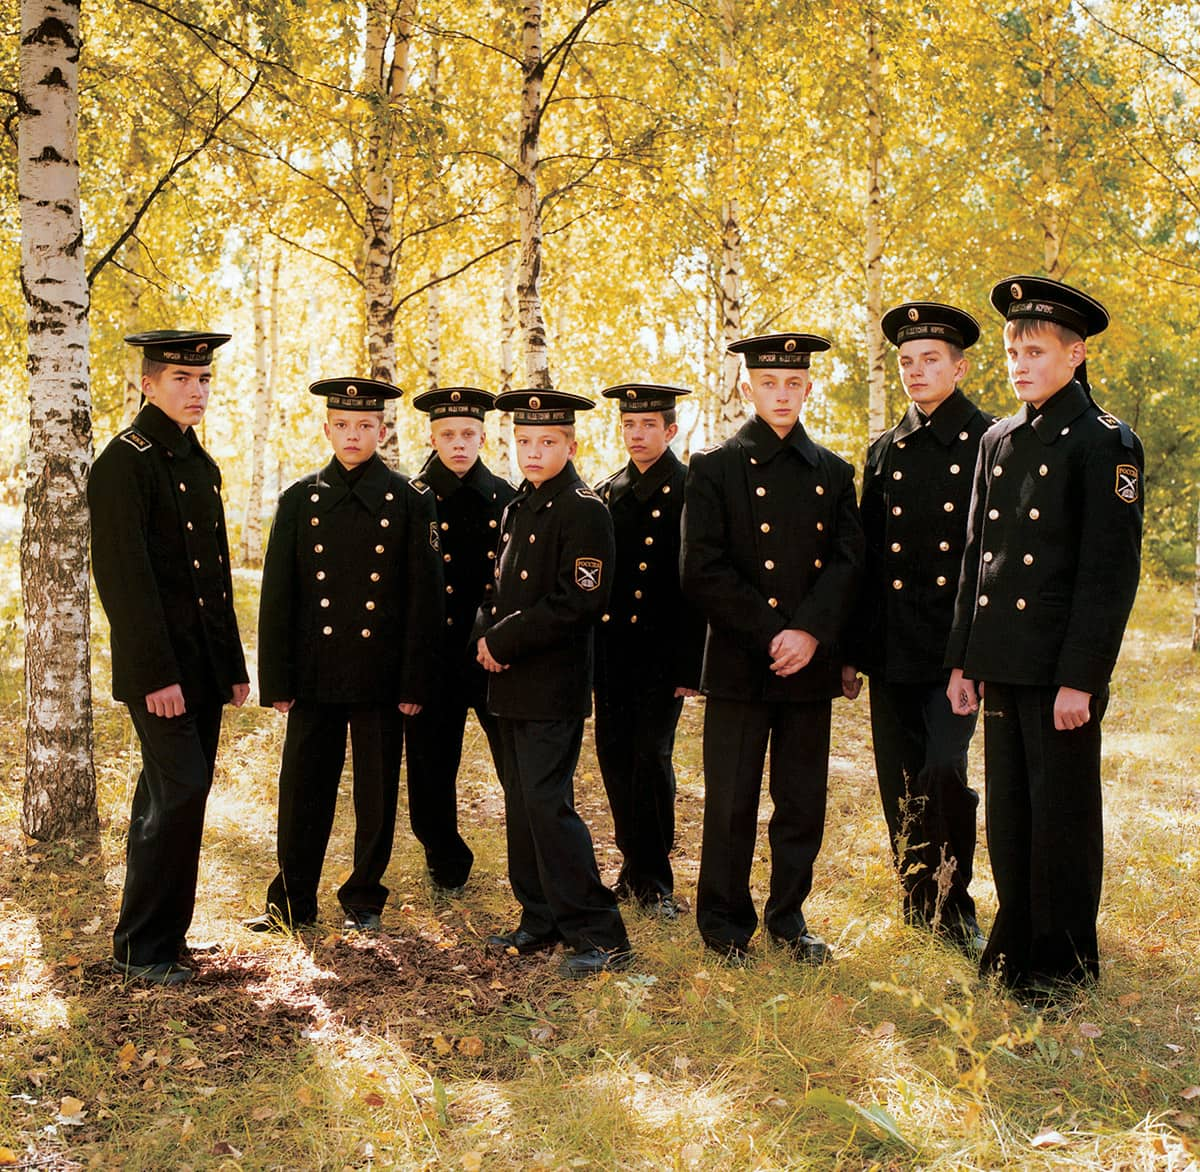 Young Cadets, Russia, 2004.